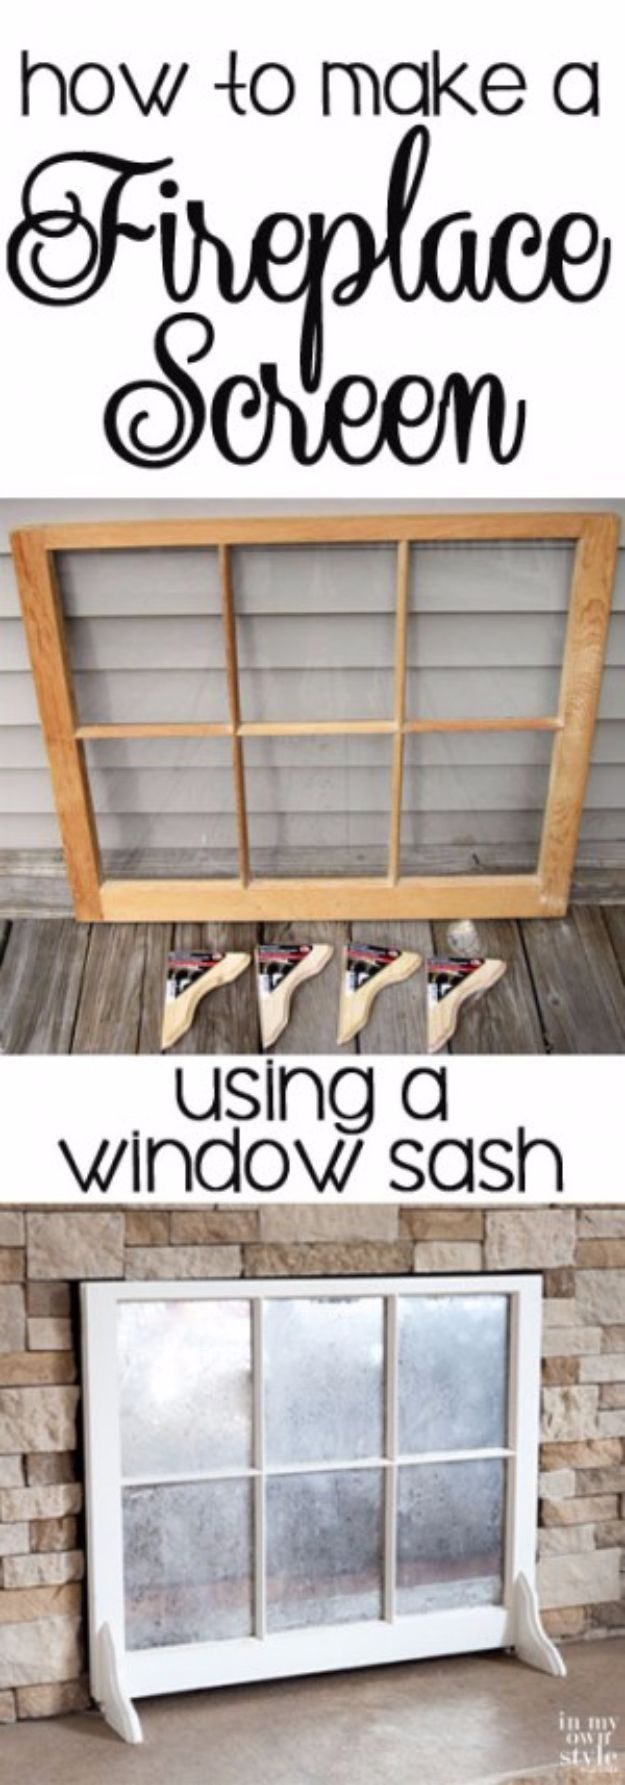 Diy Window Screen Crafts